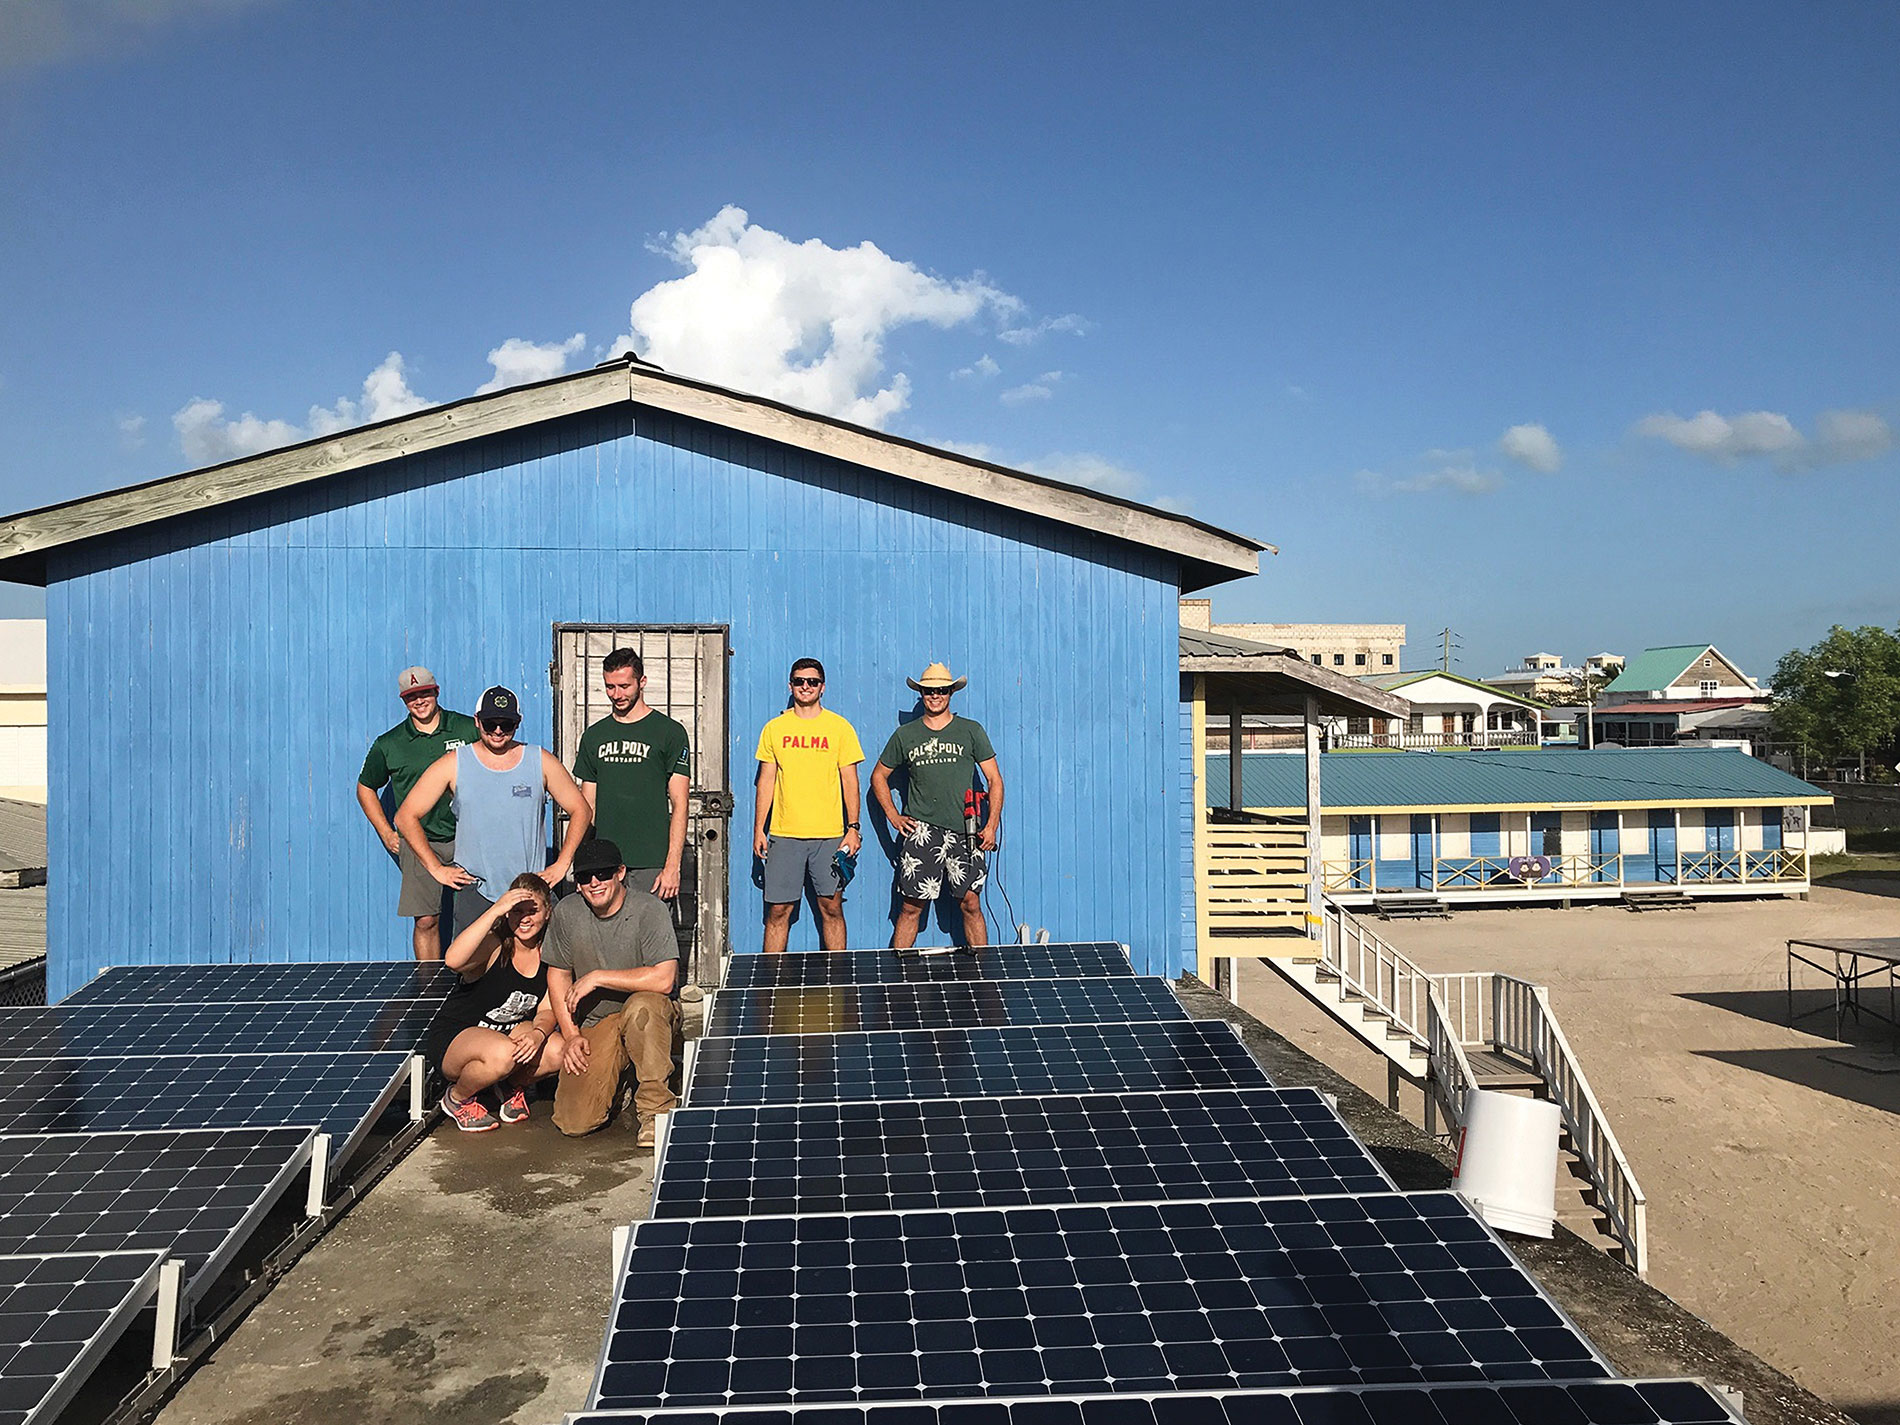 Through ELECTRI International, a team of students from California Polytechnic State University San Luis Obispo recently installed a complete photovoltaic system at the San Pedro Roman Catholic School in San Pedro, Belize. Photo Credit: Electri International